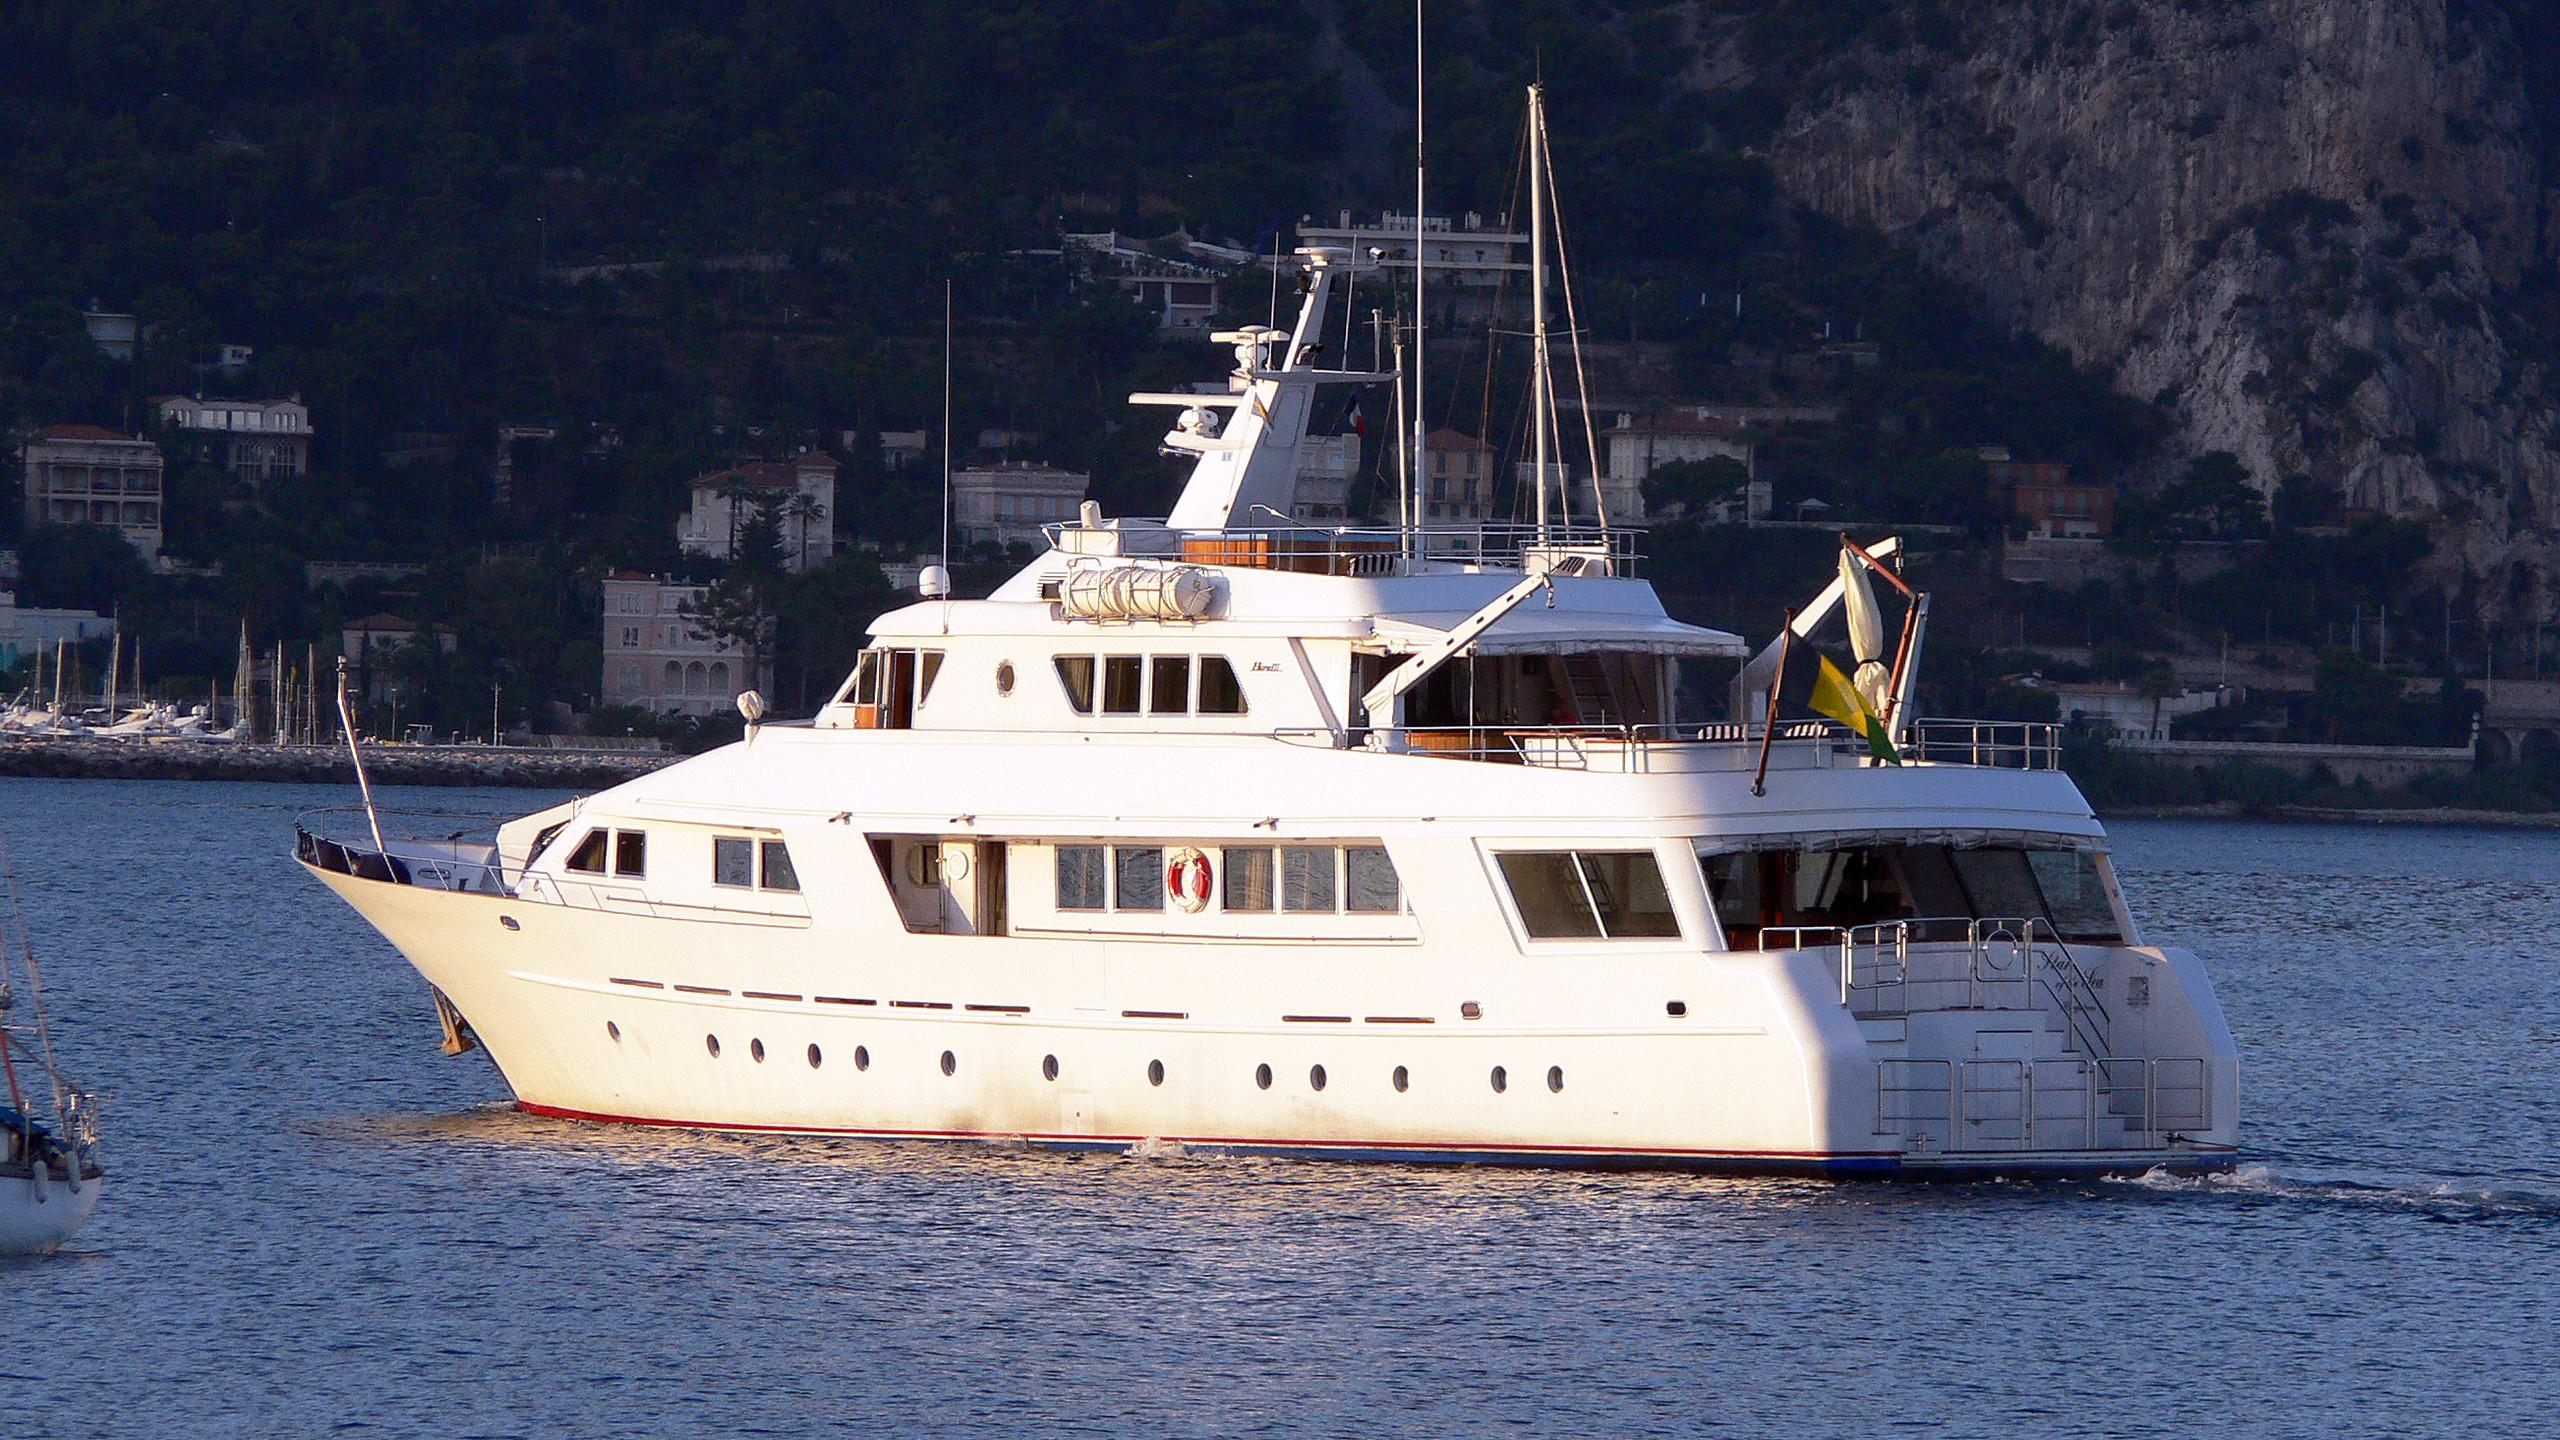 star-of-the-sea-motor-yacht-benetti-1983-34m-cruising-stern